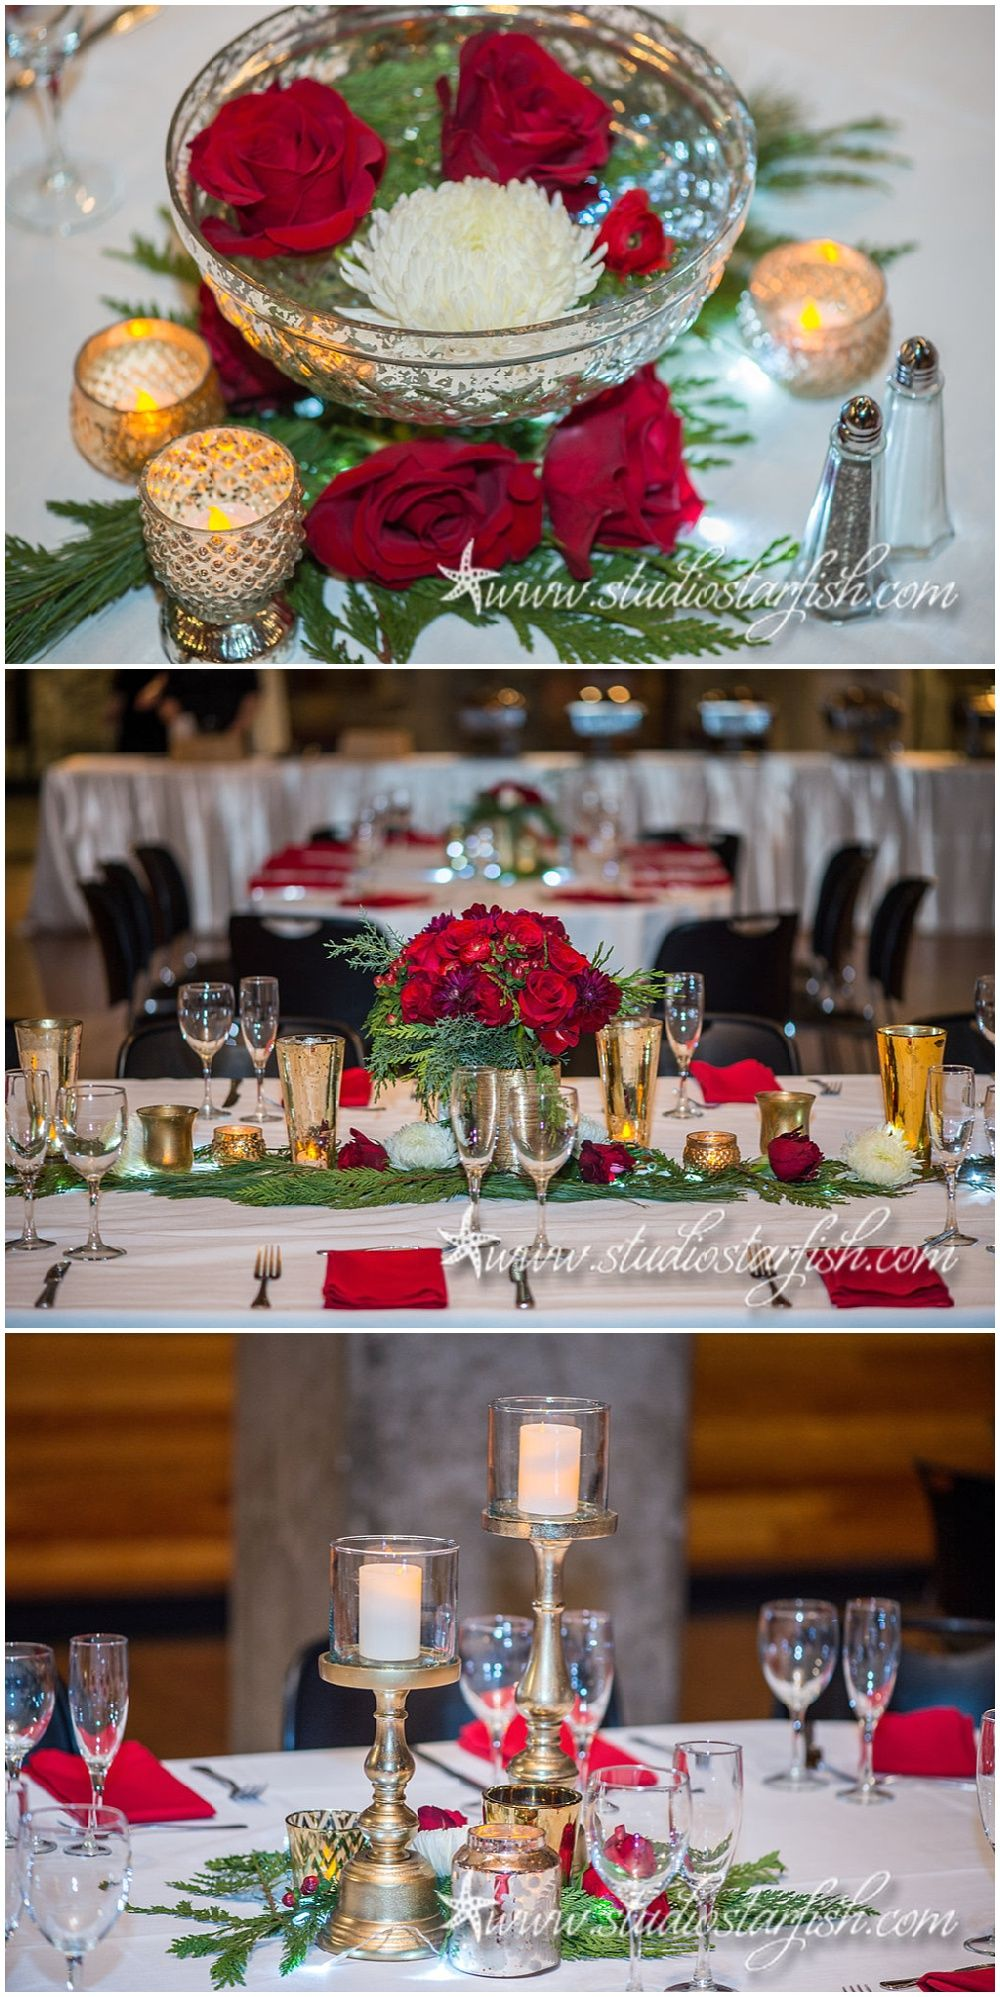 wedding reception places in twin cities%0A Winter wedding floral centerpieces designed by Minnesota wedding florist  Artemisia Studios at Mill City Museum wedding